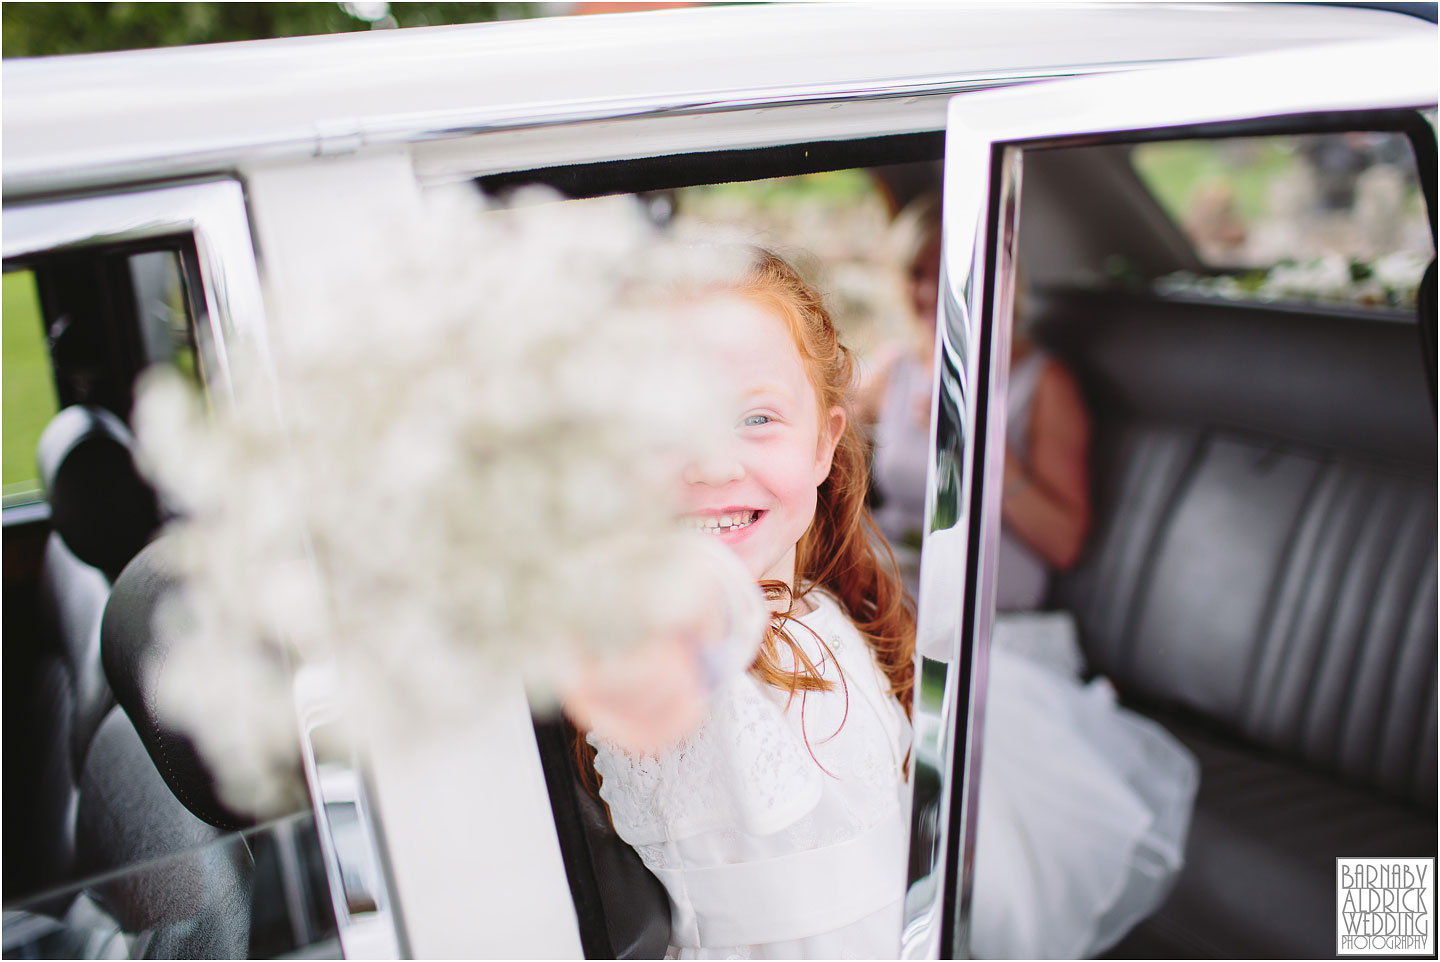 Flower Girl wedding photograph